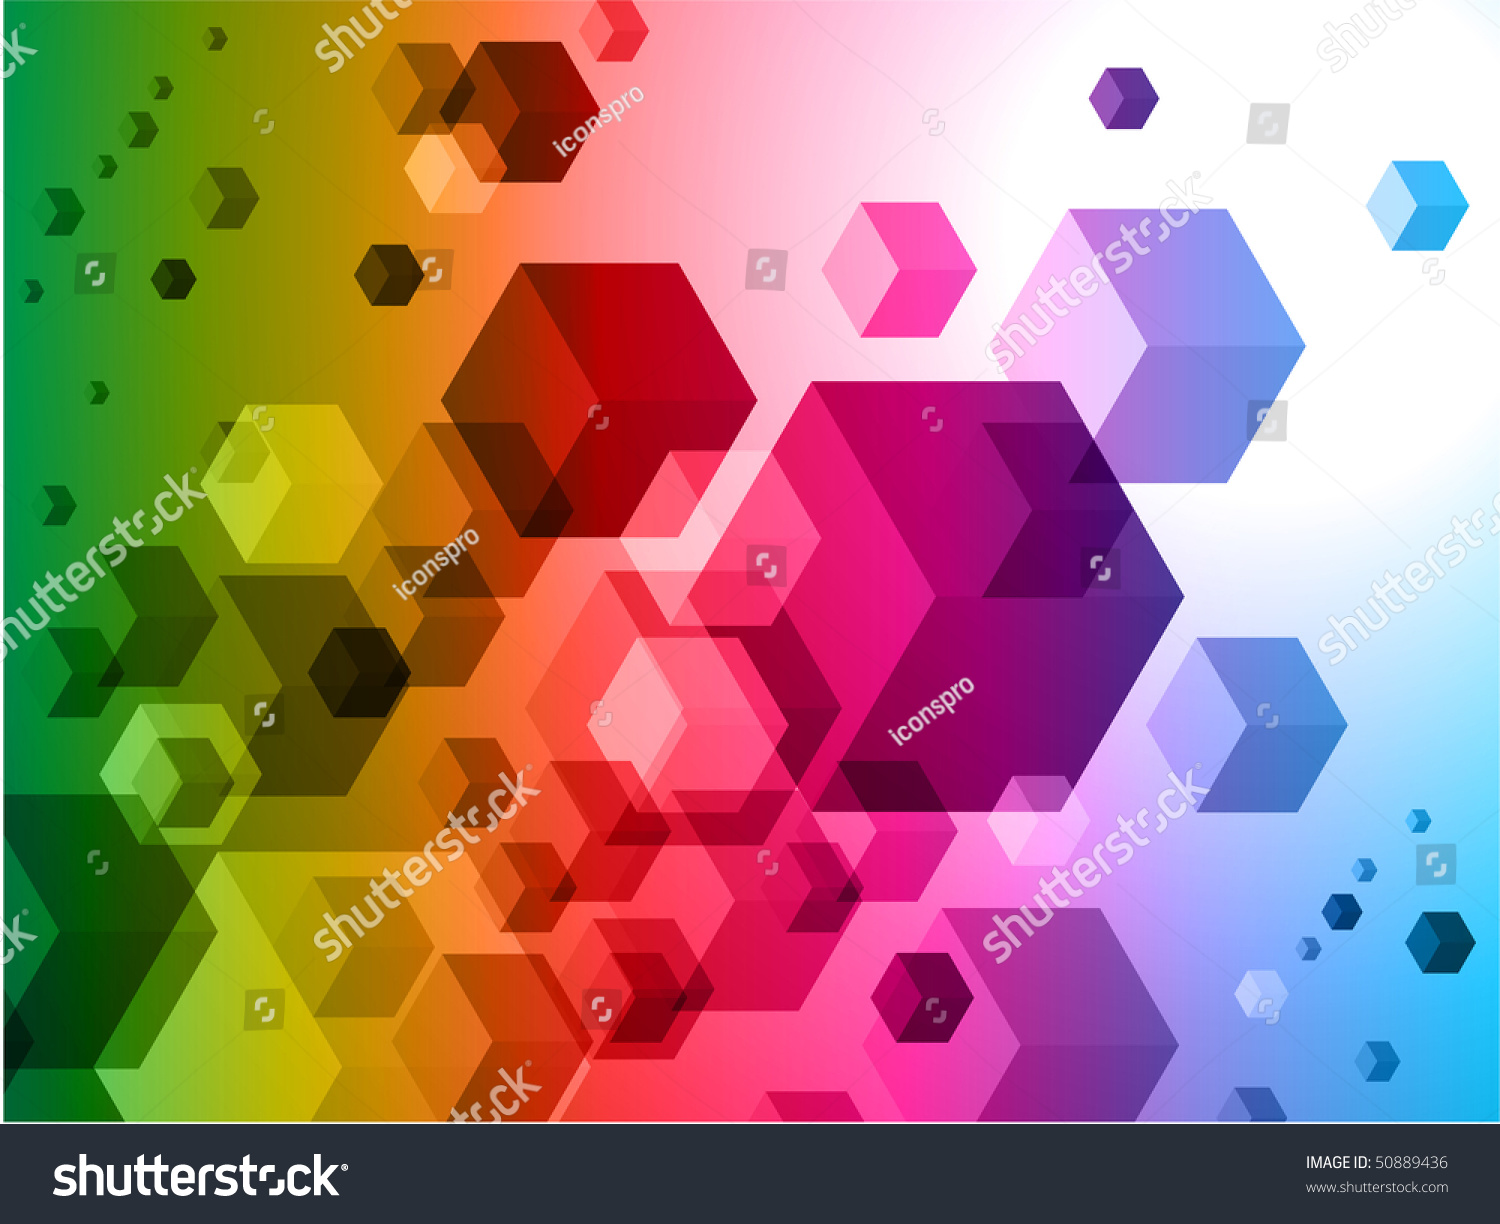 Pics photos 3d colorful abstract background design - 3d Cubes On Colorful Abstract Background Original Illustration